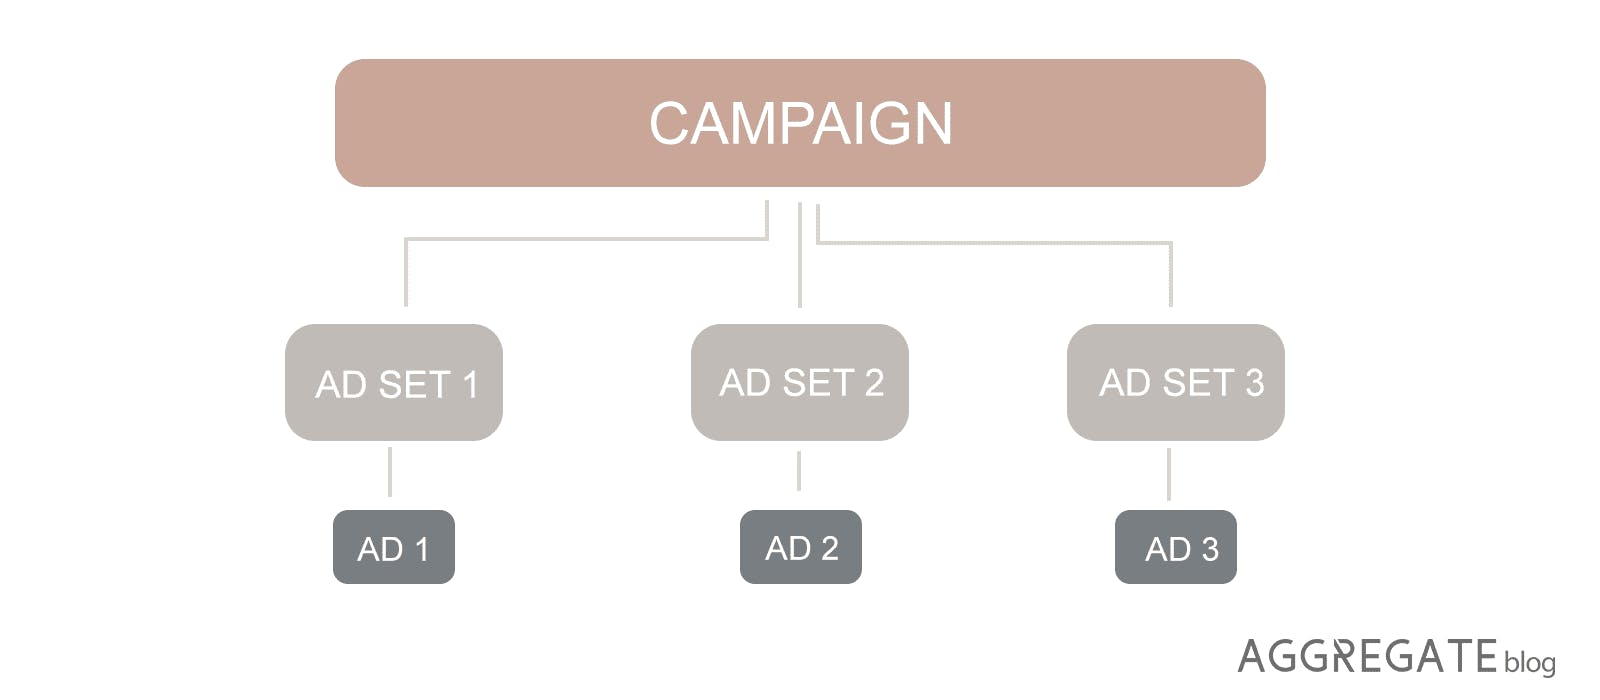 Ads Manager's organisation of its campaign setup